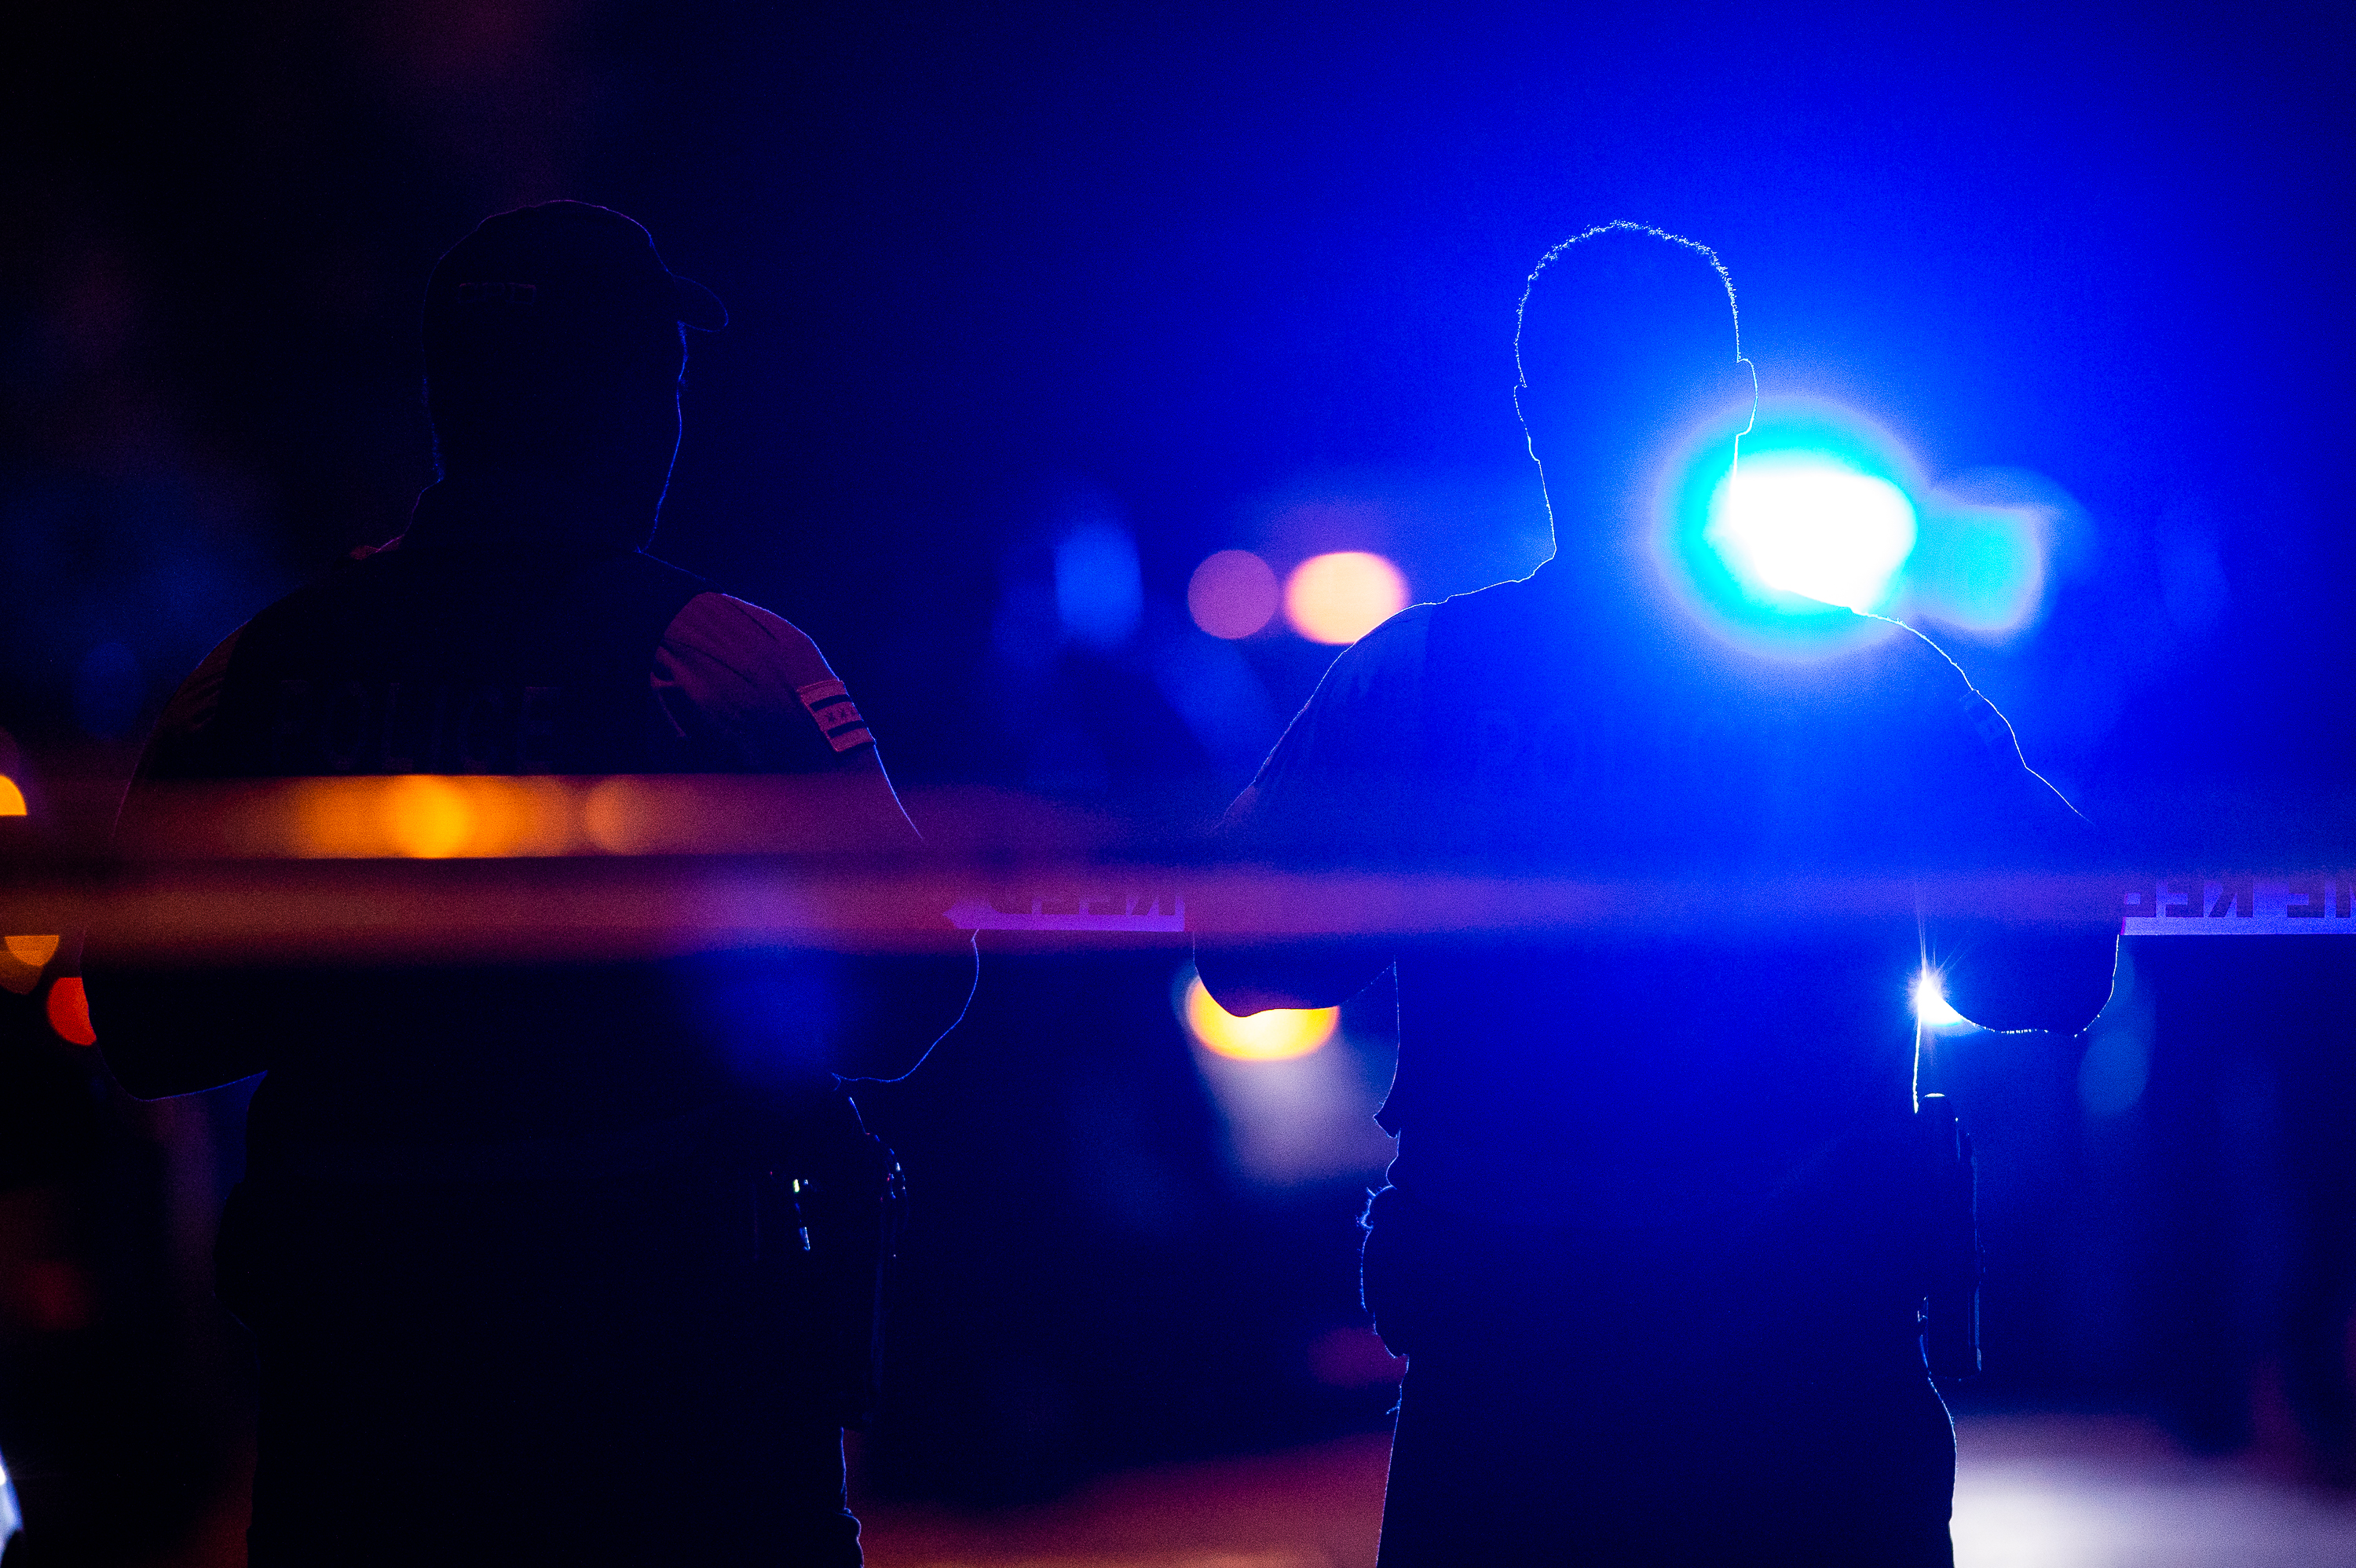 A man was killed during an argument Oct. 24, 2020, on the South Side.